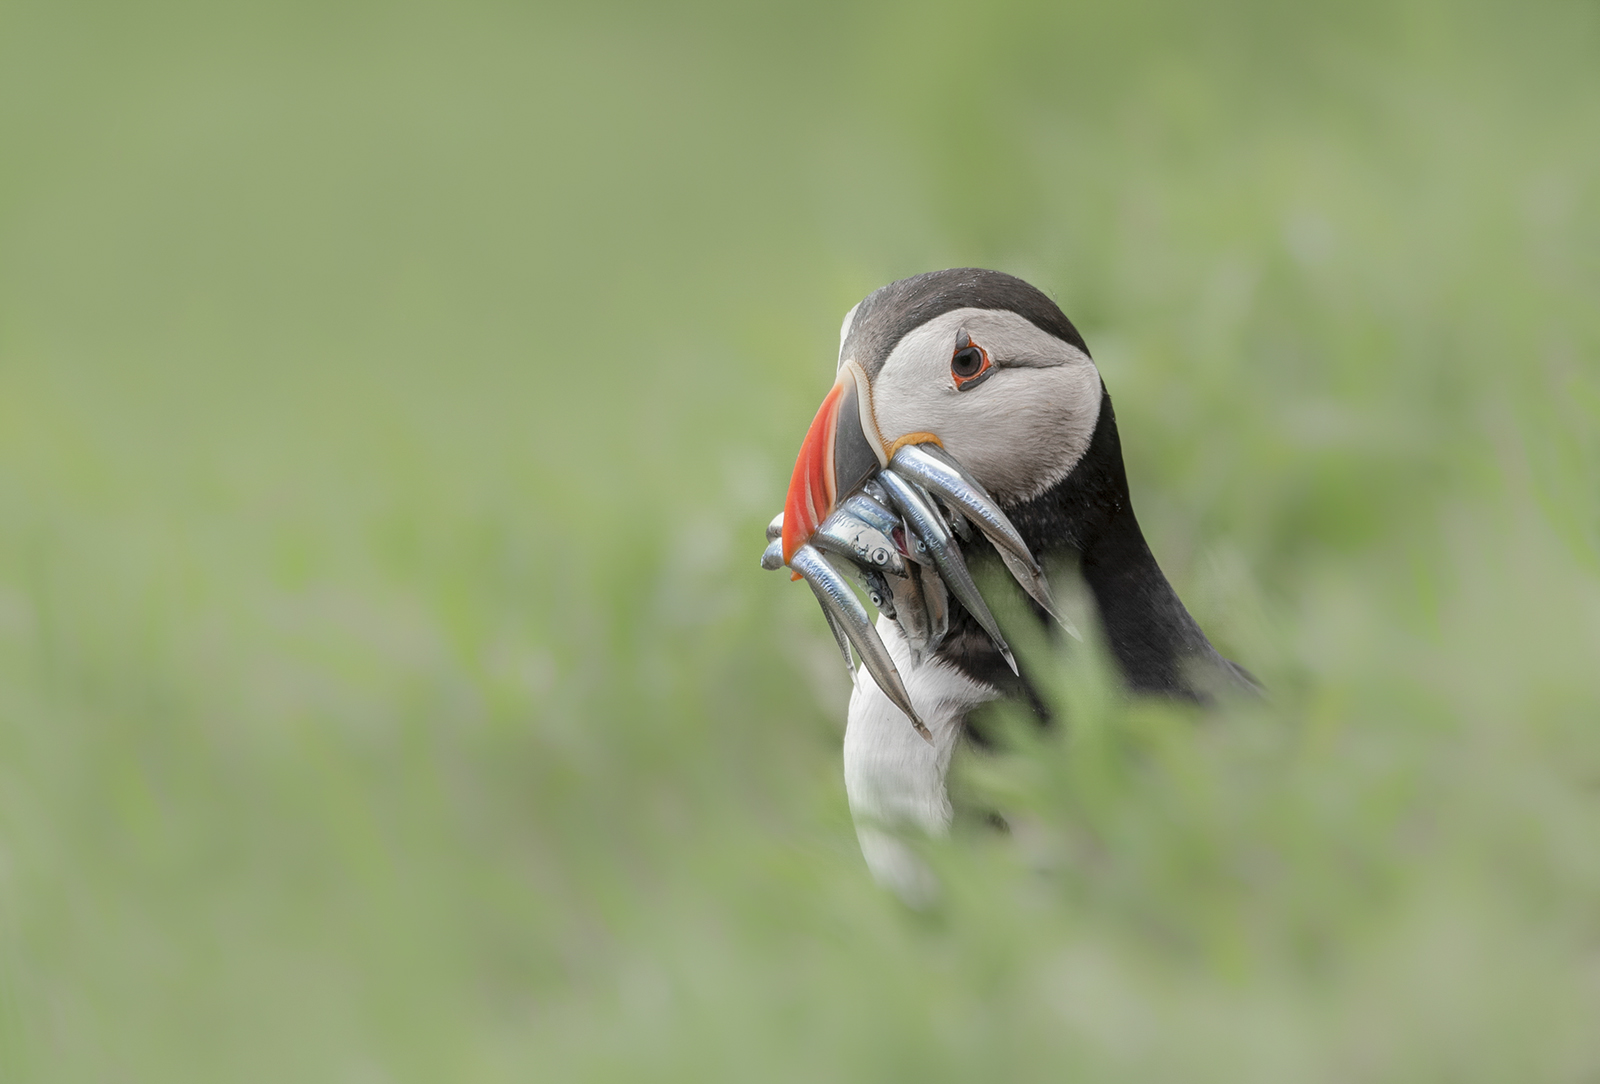 <h5>Puffin with sand eeels</h5><p>By Claire Norman</p>